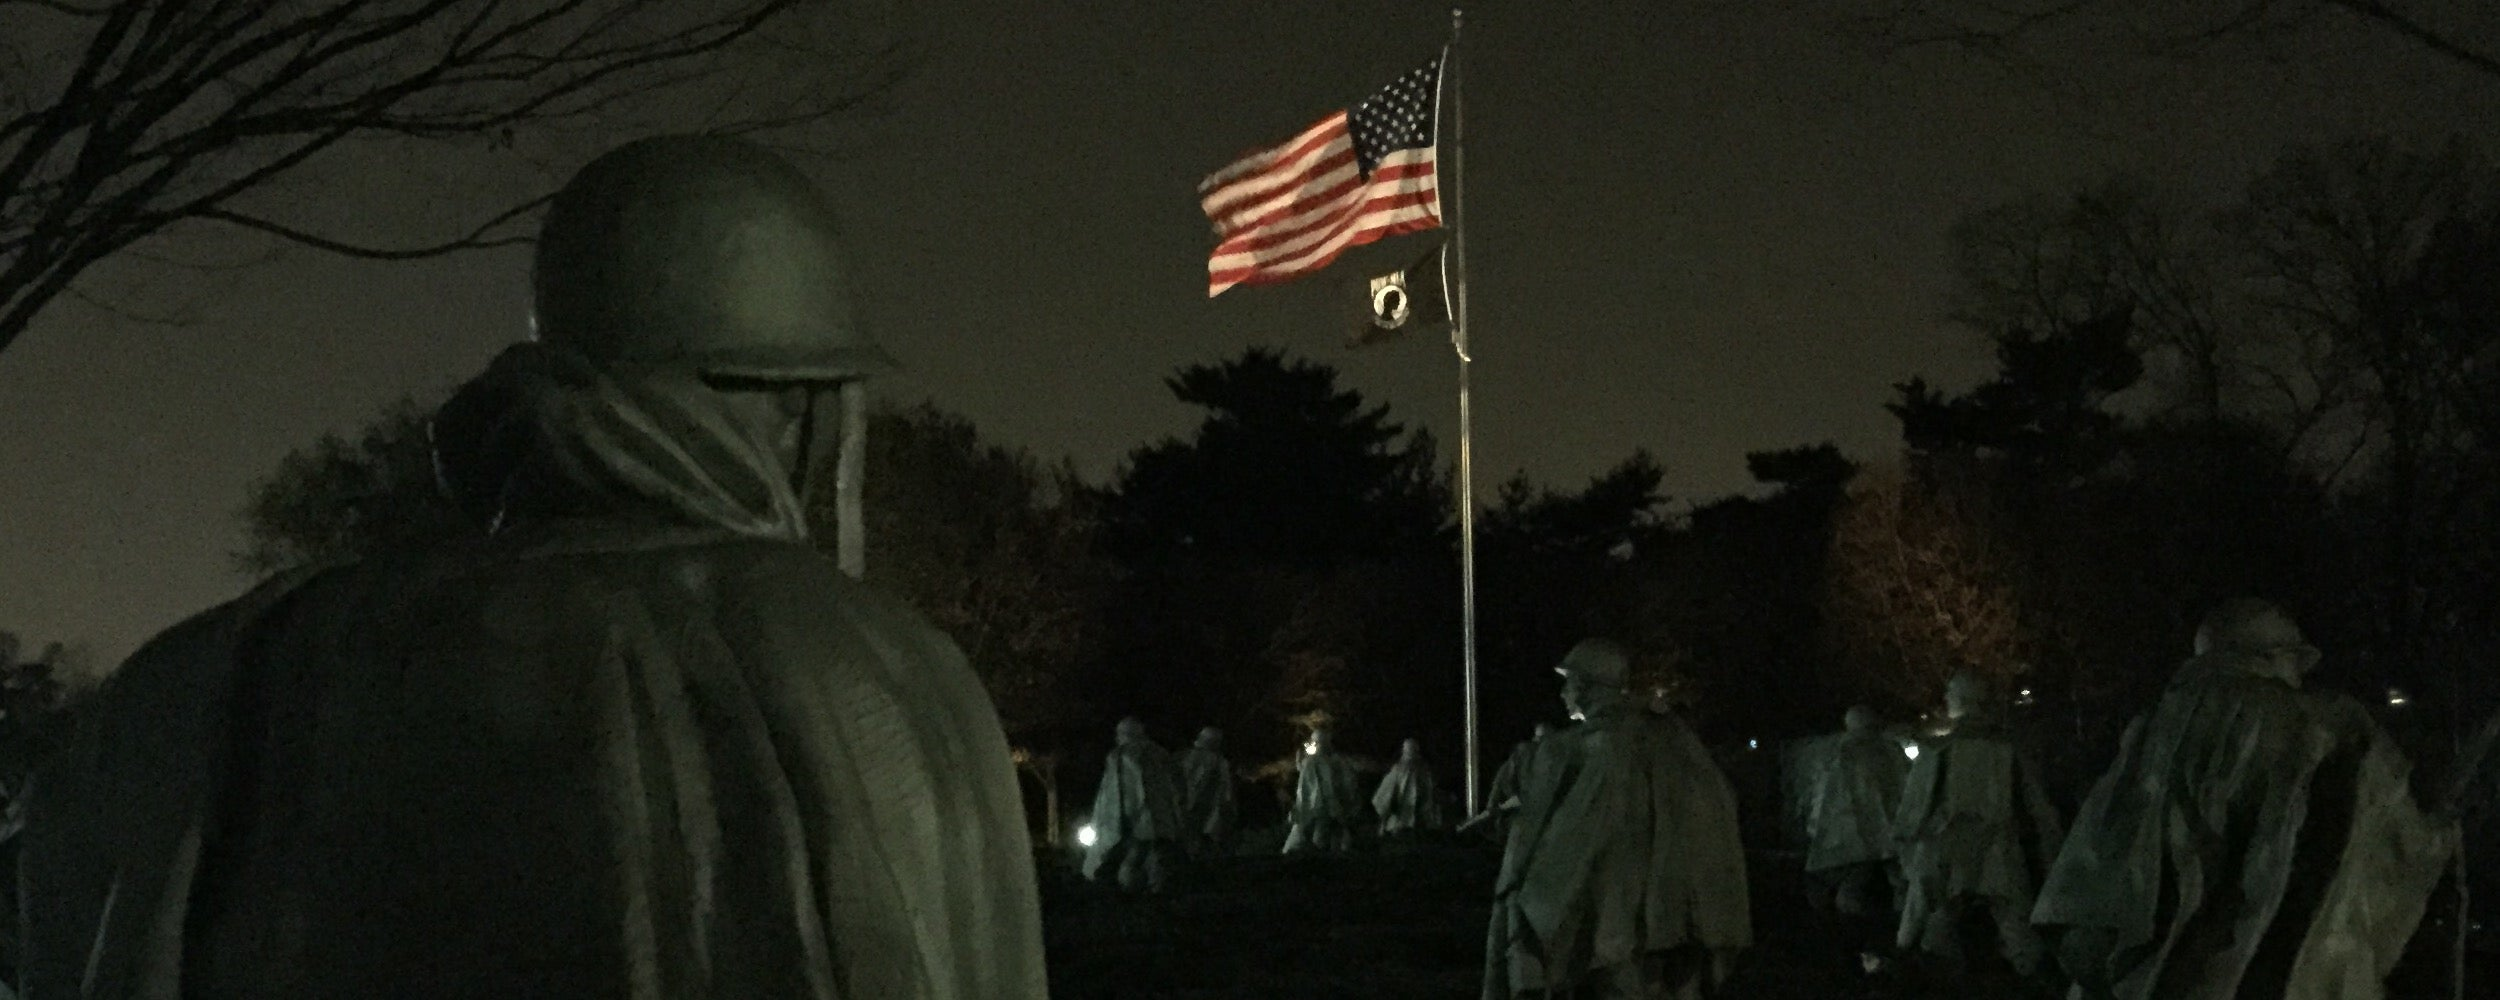 100% American-Made United States Korean War Veterans flags from LIBERTY FLAGS, The American Wave®